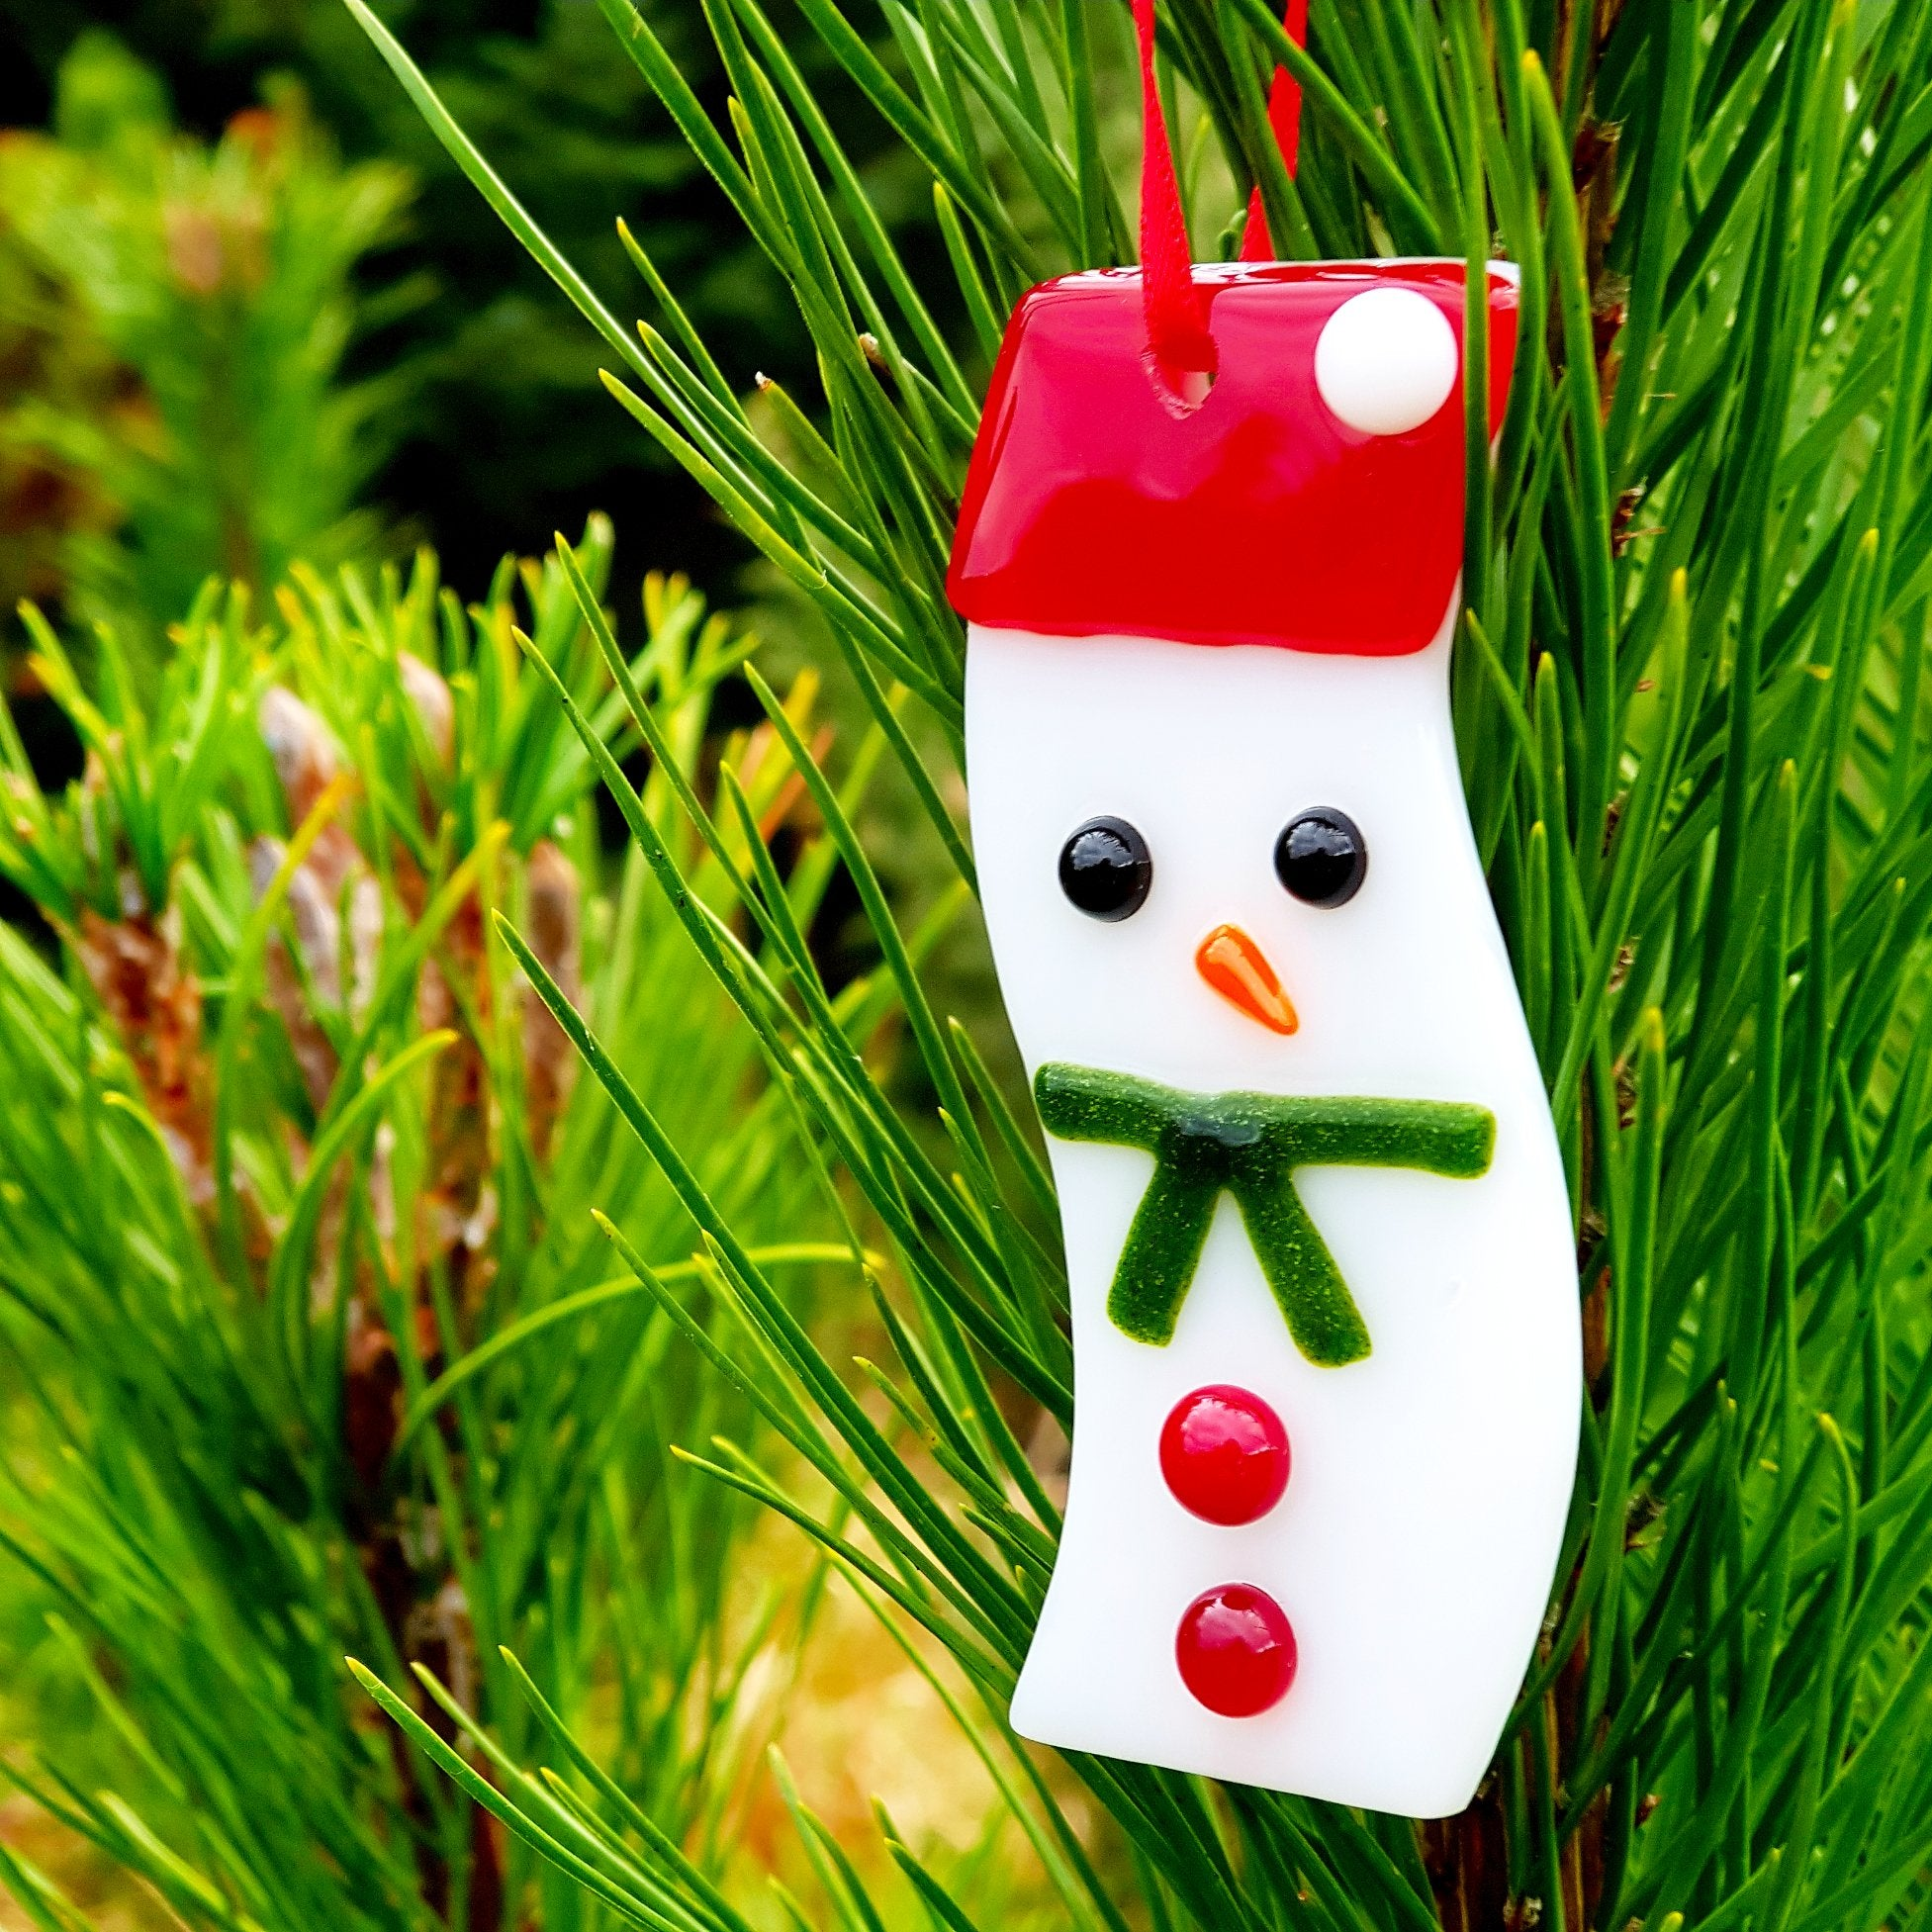 A hanging fused glass Christmas decoration in the shape of a wavy snowman, made by Connemara Blue